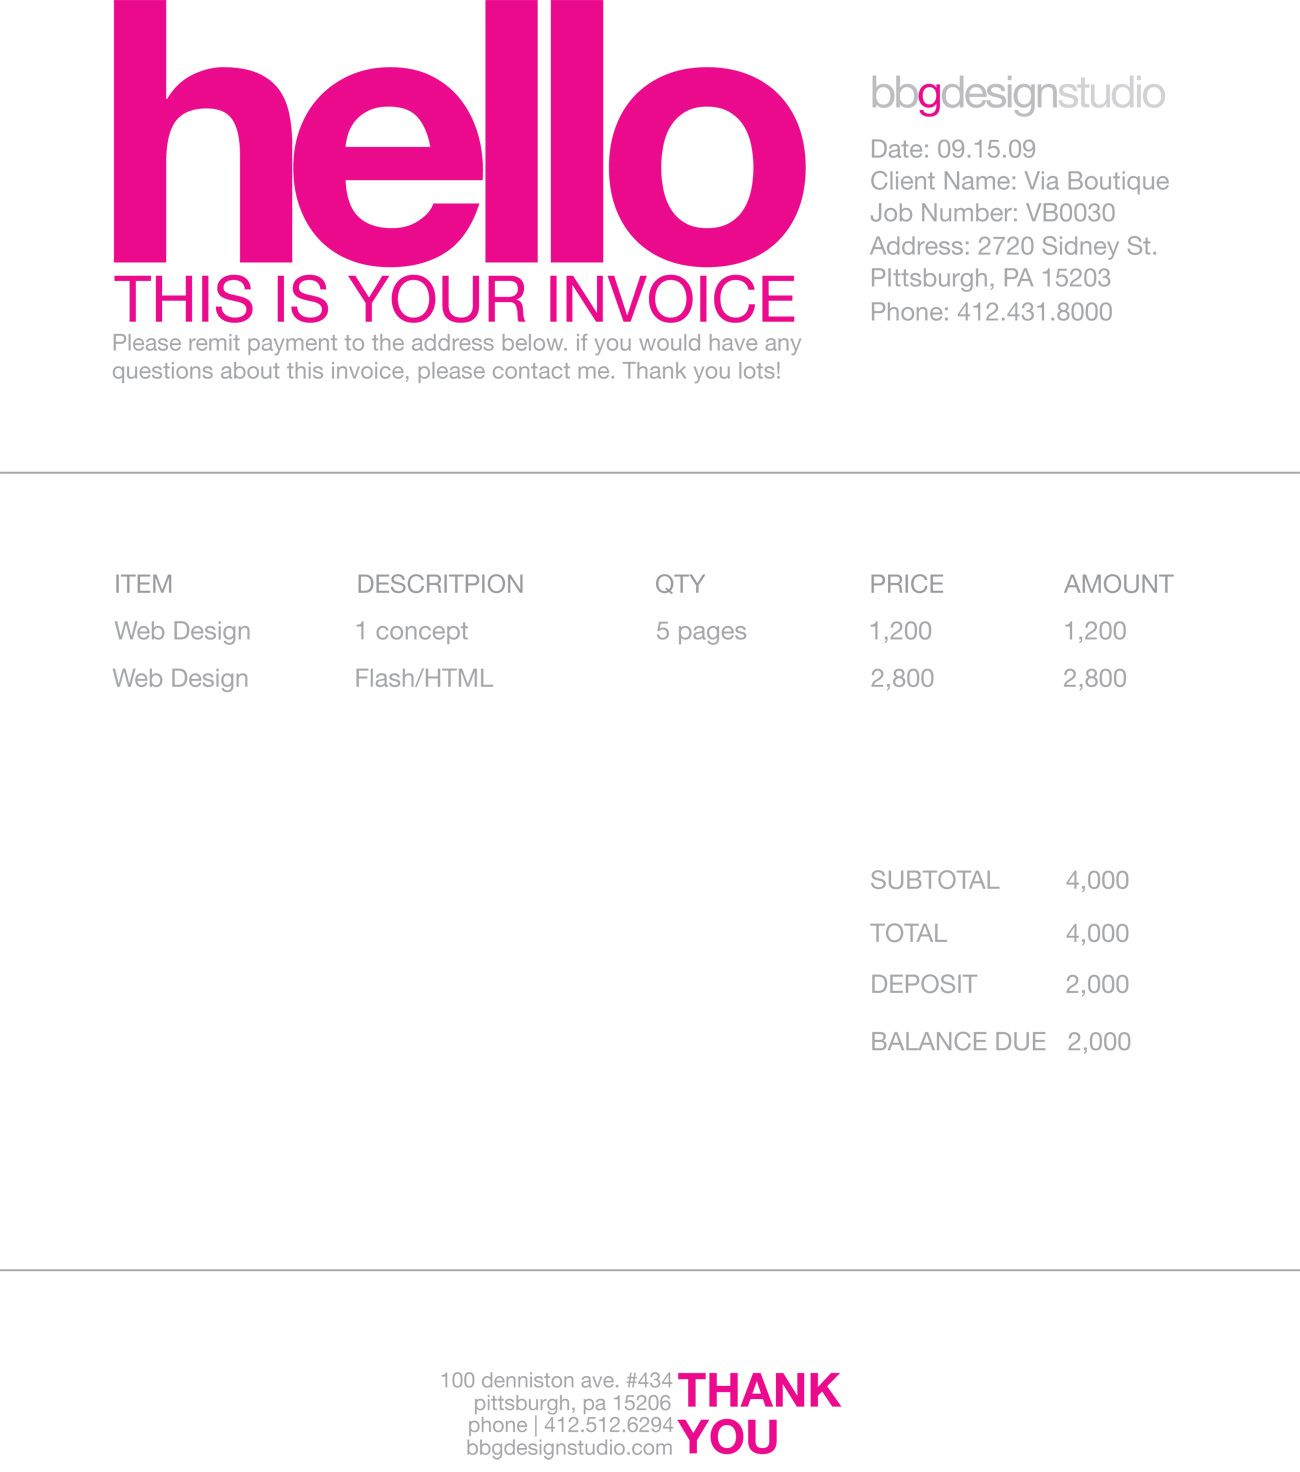 Coolmathgamesus  Sweet  Images About Invoice Design On Pinterest With Licious Uk Invoice Template Excel Besides How To Track Invoices Furthermore Free Online Printable Invoices With Charming Porsche Macan Invoice Also Downloadable Invoice Templates In Addition How To Determine Invoice Price On A New Car And Excel Invoice Form As Well As Google Invoices Templates Free Additionally Sample Invoice Statement From Pinterestcom With Coolmathgamesus  Licious  Images About Invoice Design On Pinterest With Charming Uk Invoice Template Excel Besides How To Track Invoices Furthermore Free Online Printable Invoices And Sweet Porsche Macan Invoice Also Downloadable Invoice Templates In Addition How To Determine Invoice Price On A New Car From Pinterestcom